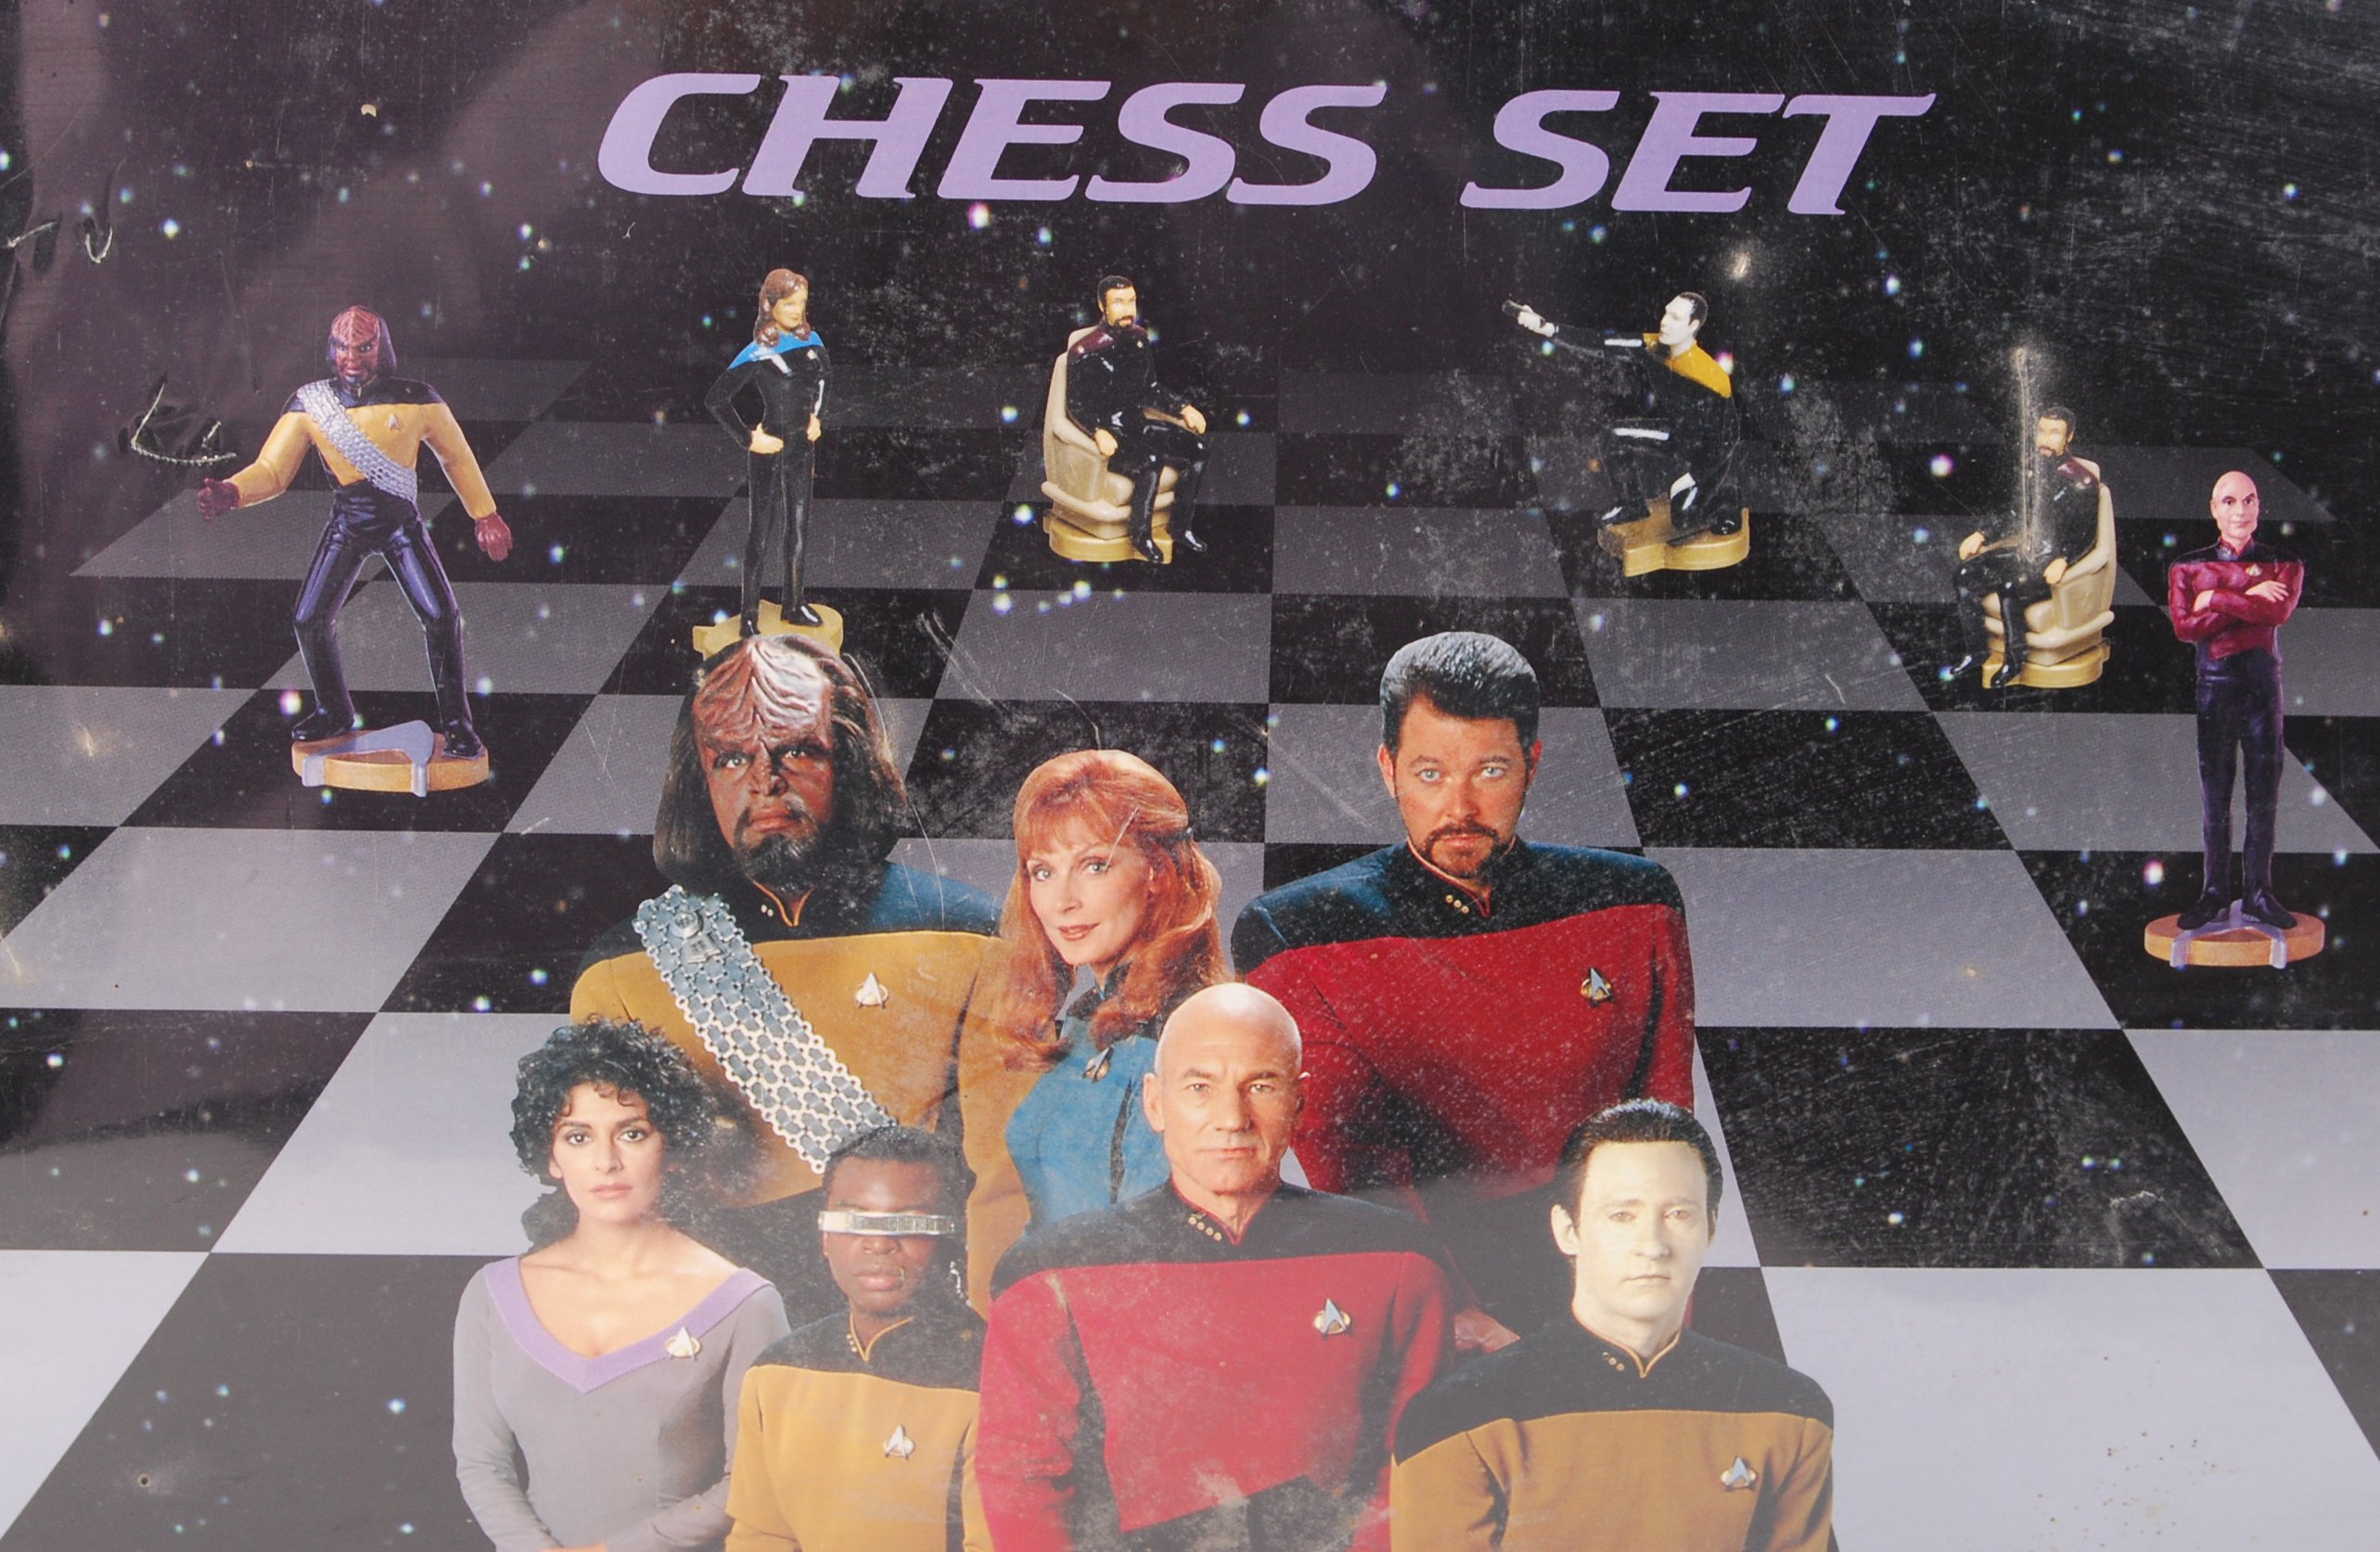 Lot 19 - STAR TREK THE NEXT GENERATION ' CHESS SET ' FACTORY SEALED